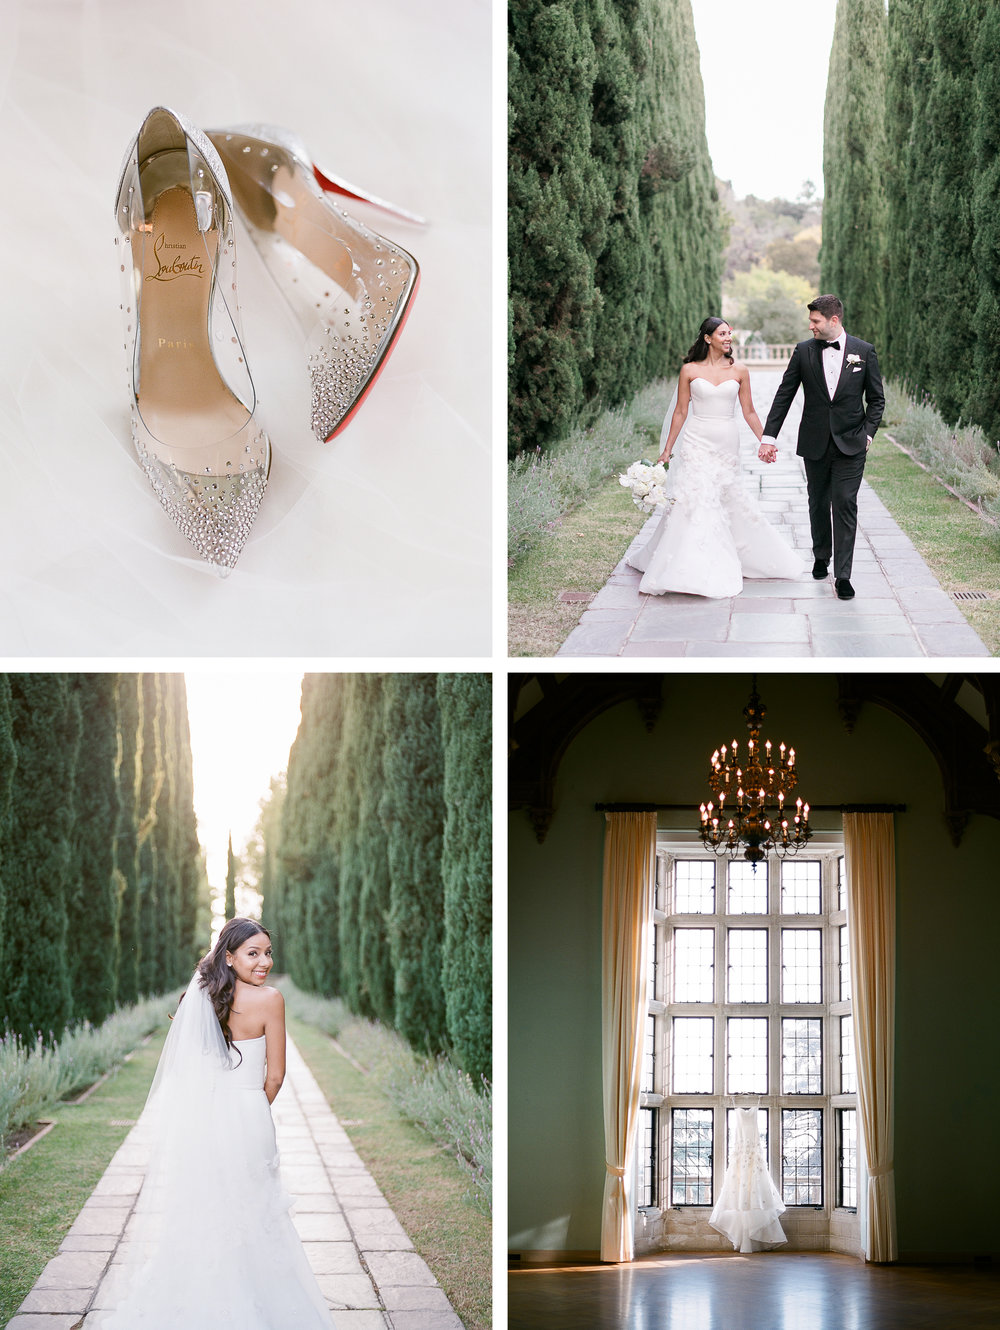 BEVERLY HILLS WEDDING AT GREYSTONE MANSION - Patti + mario